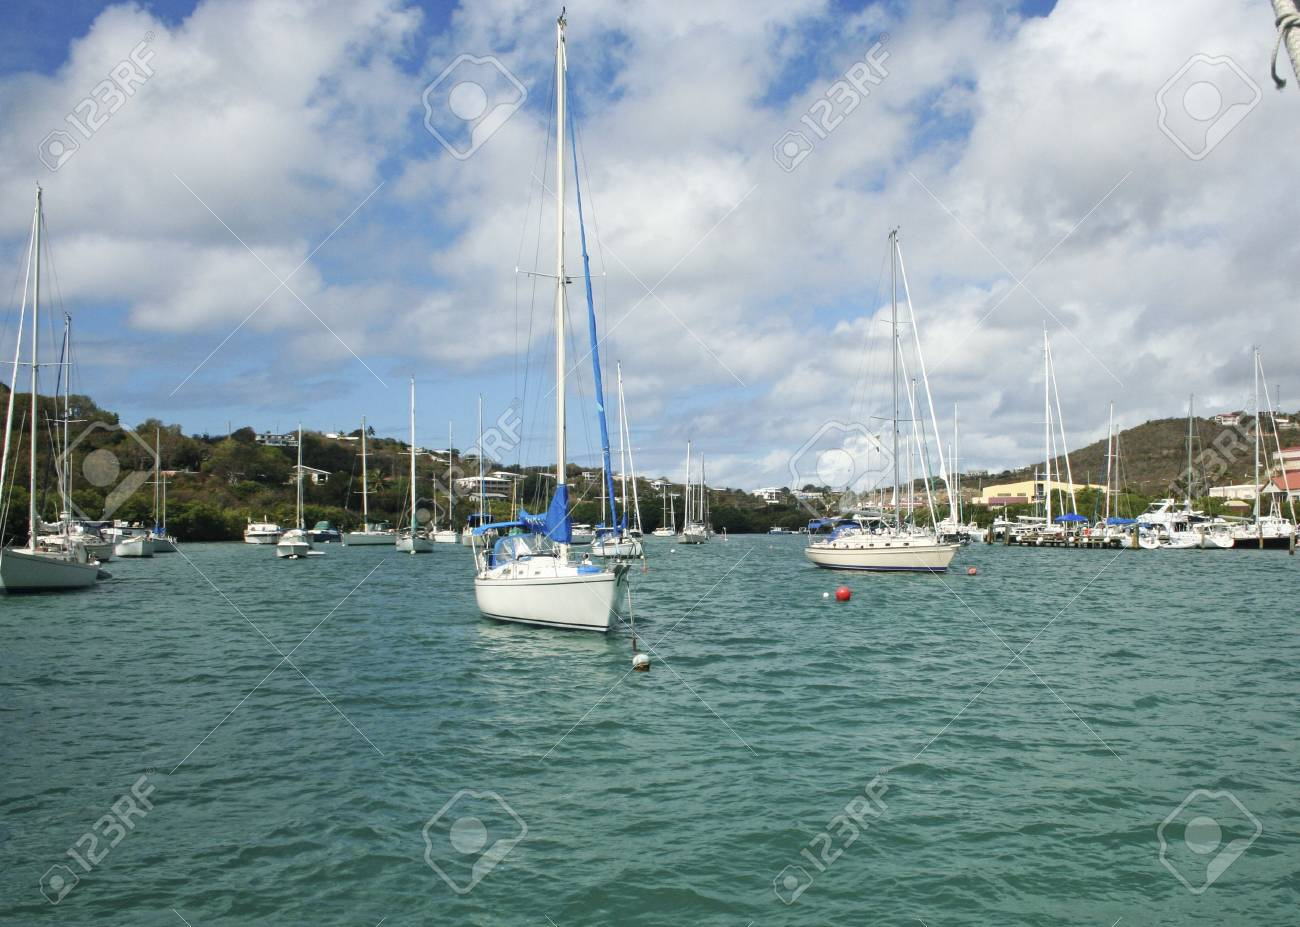 The harbor of a beautiful tropical island filled with sailboats in St. Thomas Virgin Islands Stock Photo - 2987164